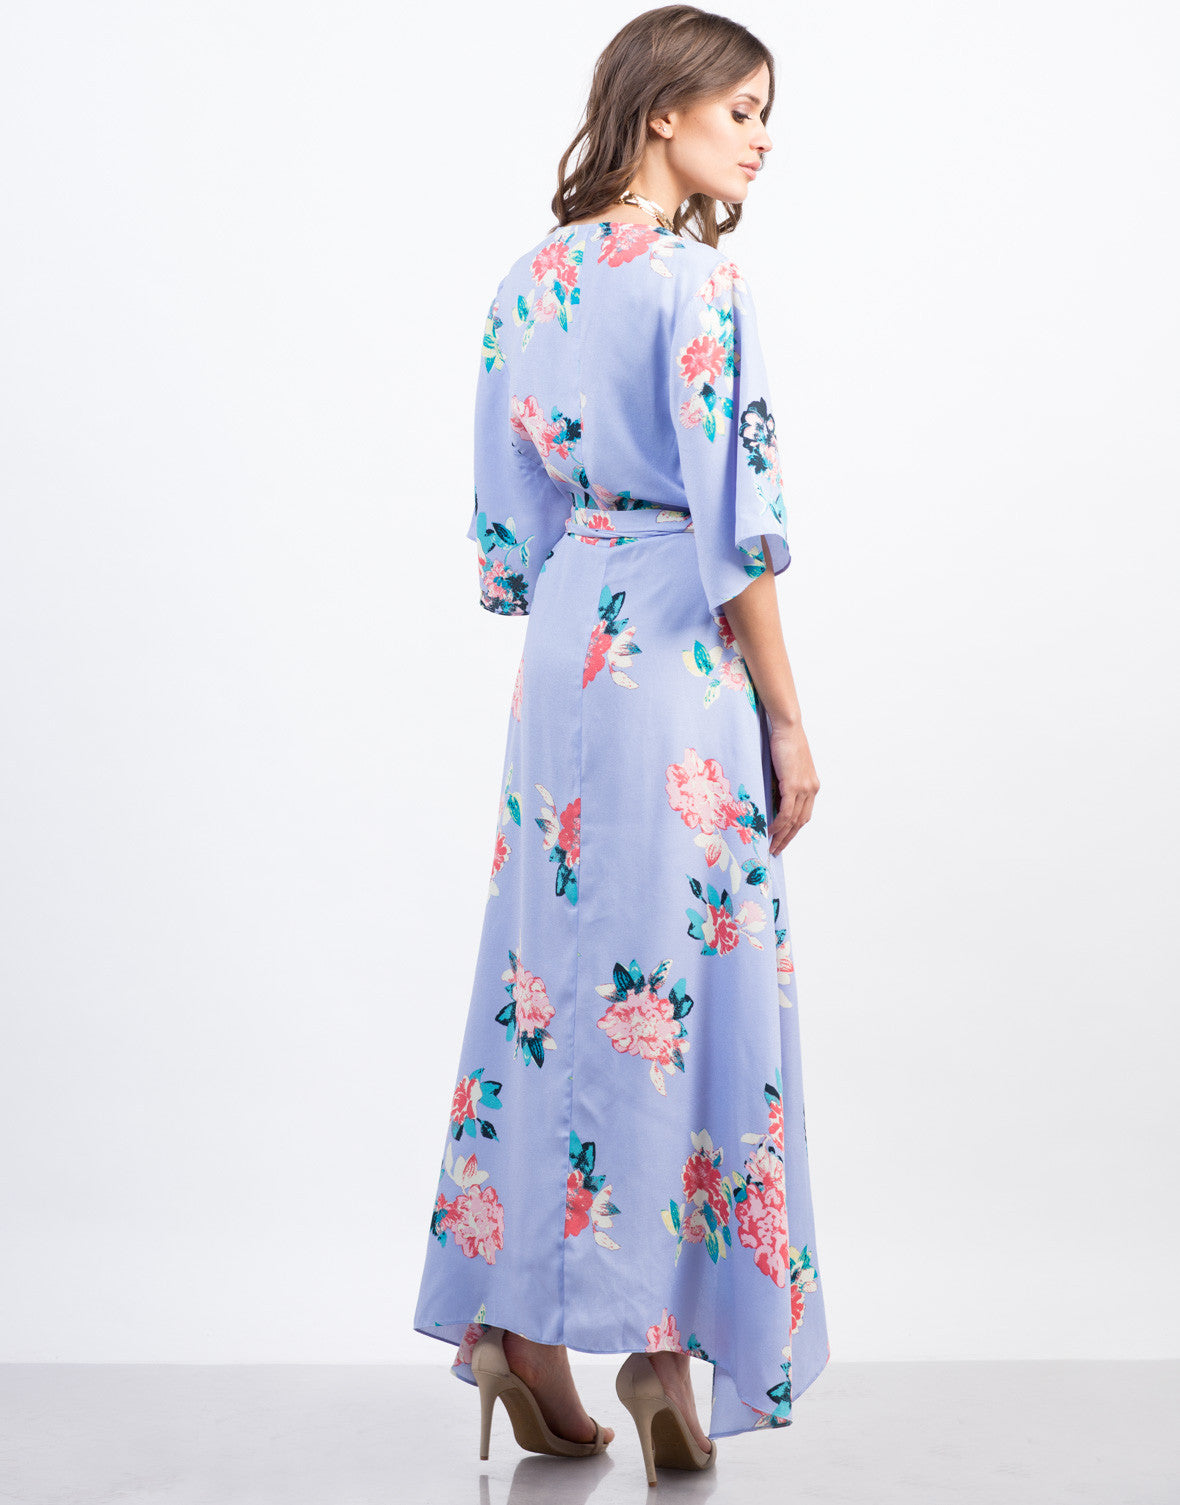 Back View of Floral Kimono Wrap Dress